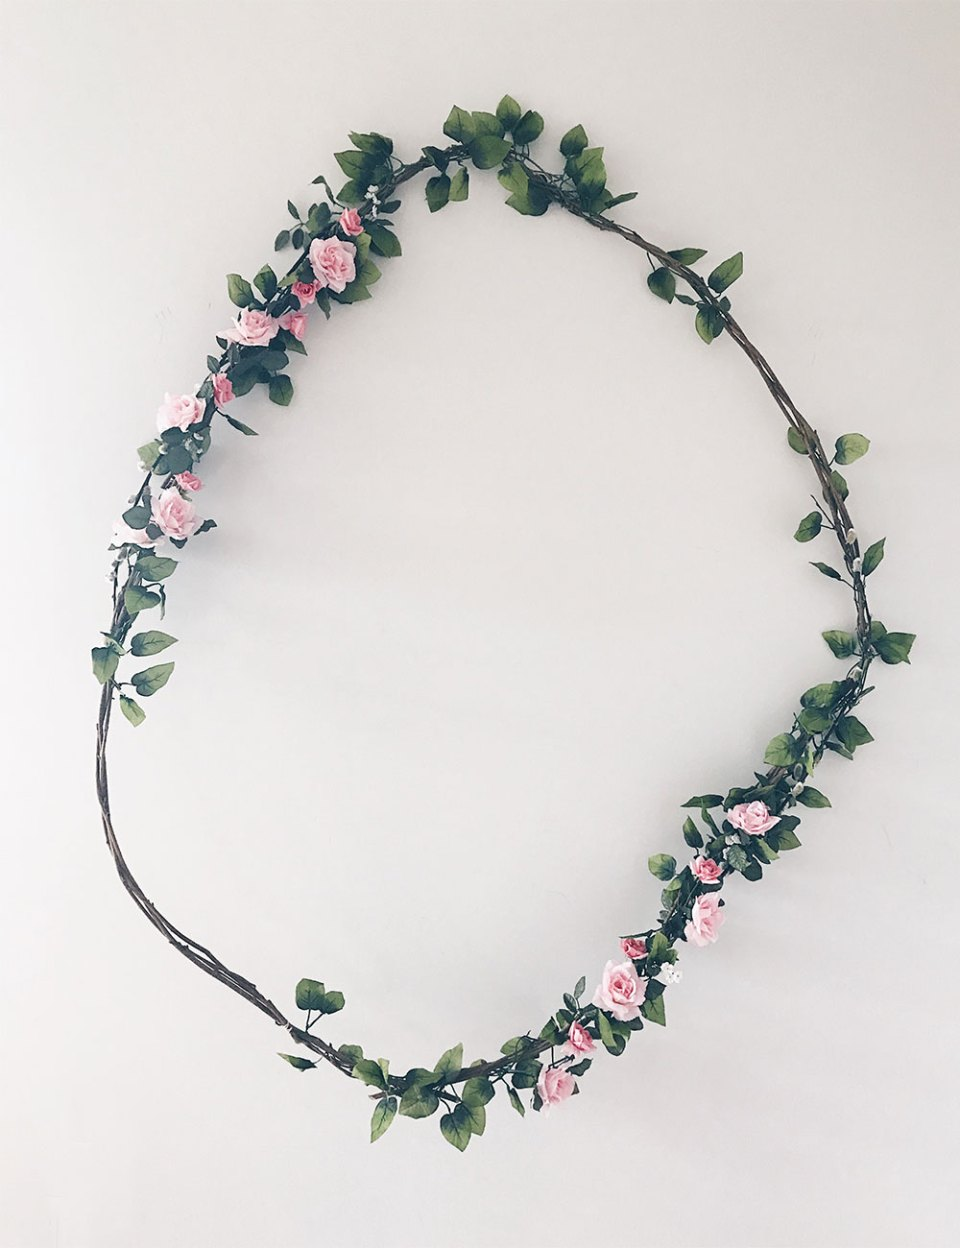 DIY Large Floral Wreath for Under Ten Dollars